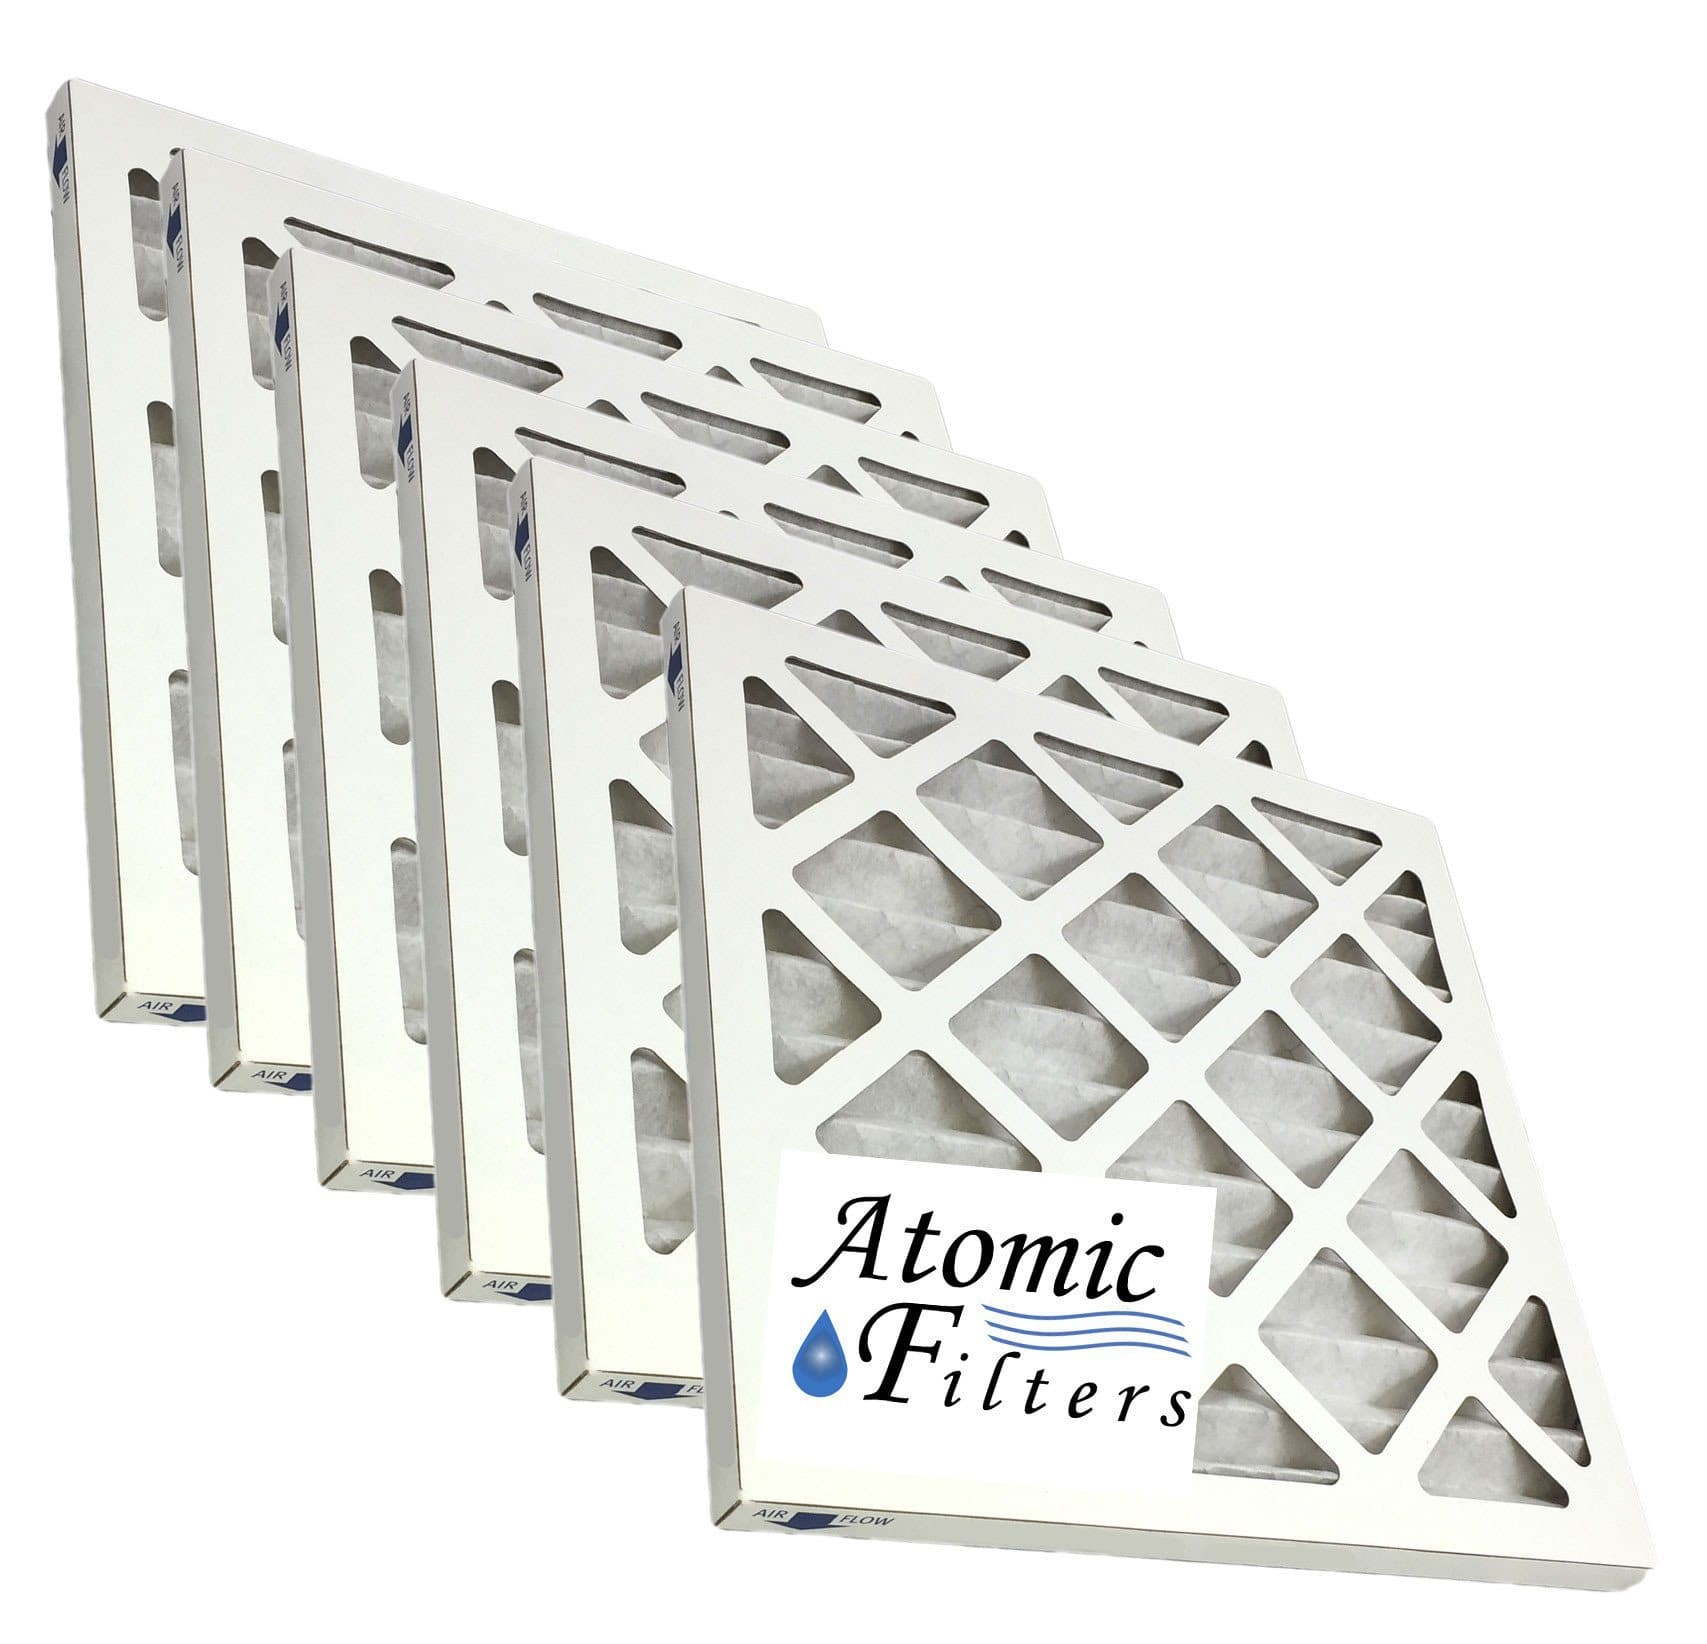 18x18x1 Merv 11 Pleated AC Furnace Filter - Case of 6 by Atomic Filters